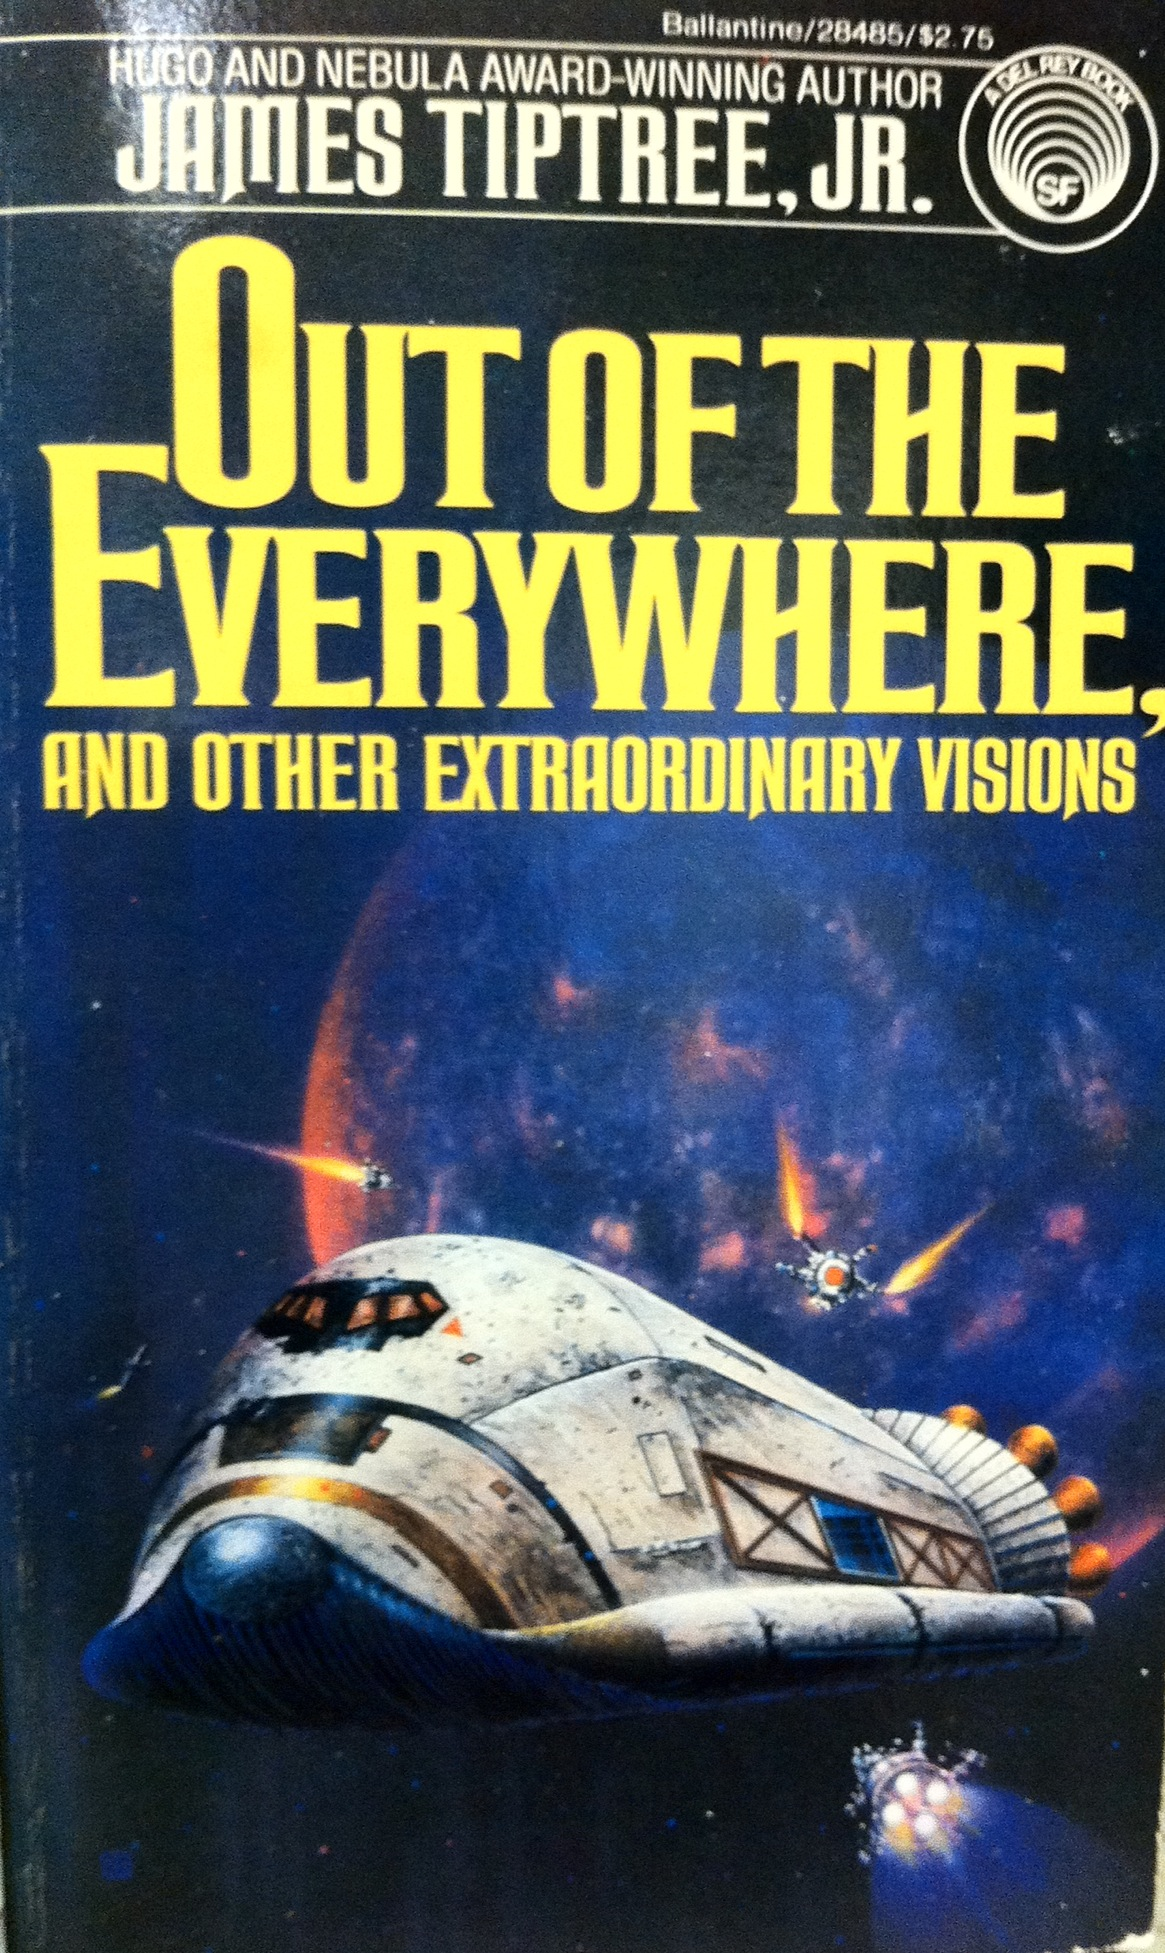 James Tiptree Jr. - Out Of The Everywhere (cover)